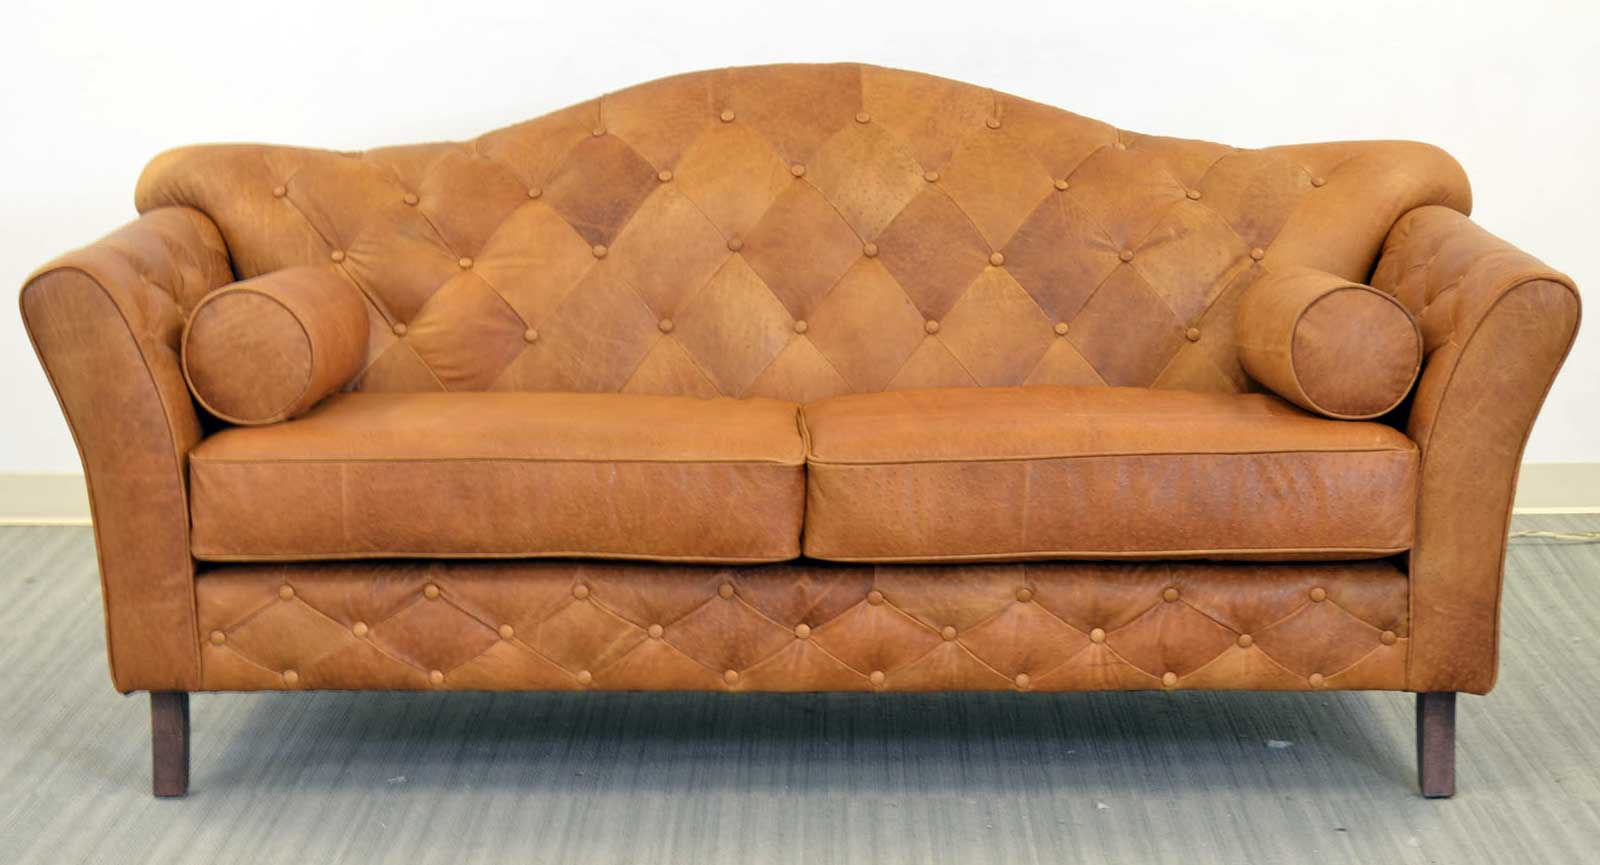 Maestro sofa the leather sofa company Leather sofa throws